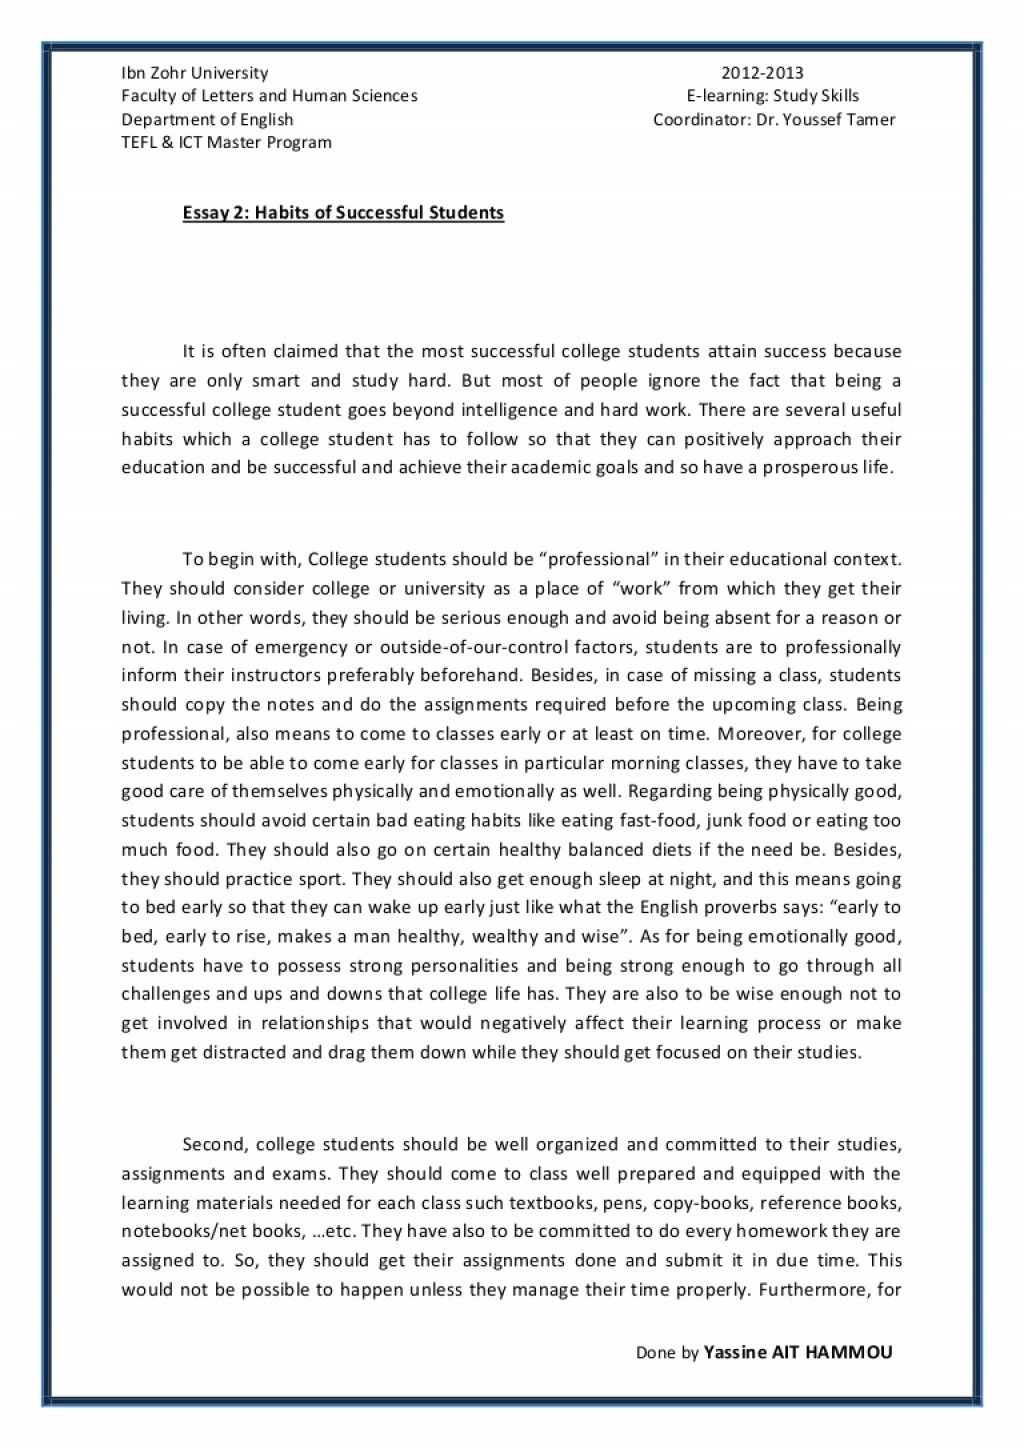 004 Essay Example Essay2 Succesfulcollegestudentshabitsbyyassineaithammou Phpapp01 Thumbnail About Good Staggering A Student Responsibilities Of In Urdu Write An What Are The Quality Characteristics Large